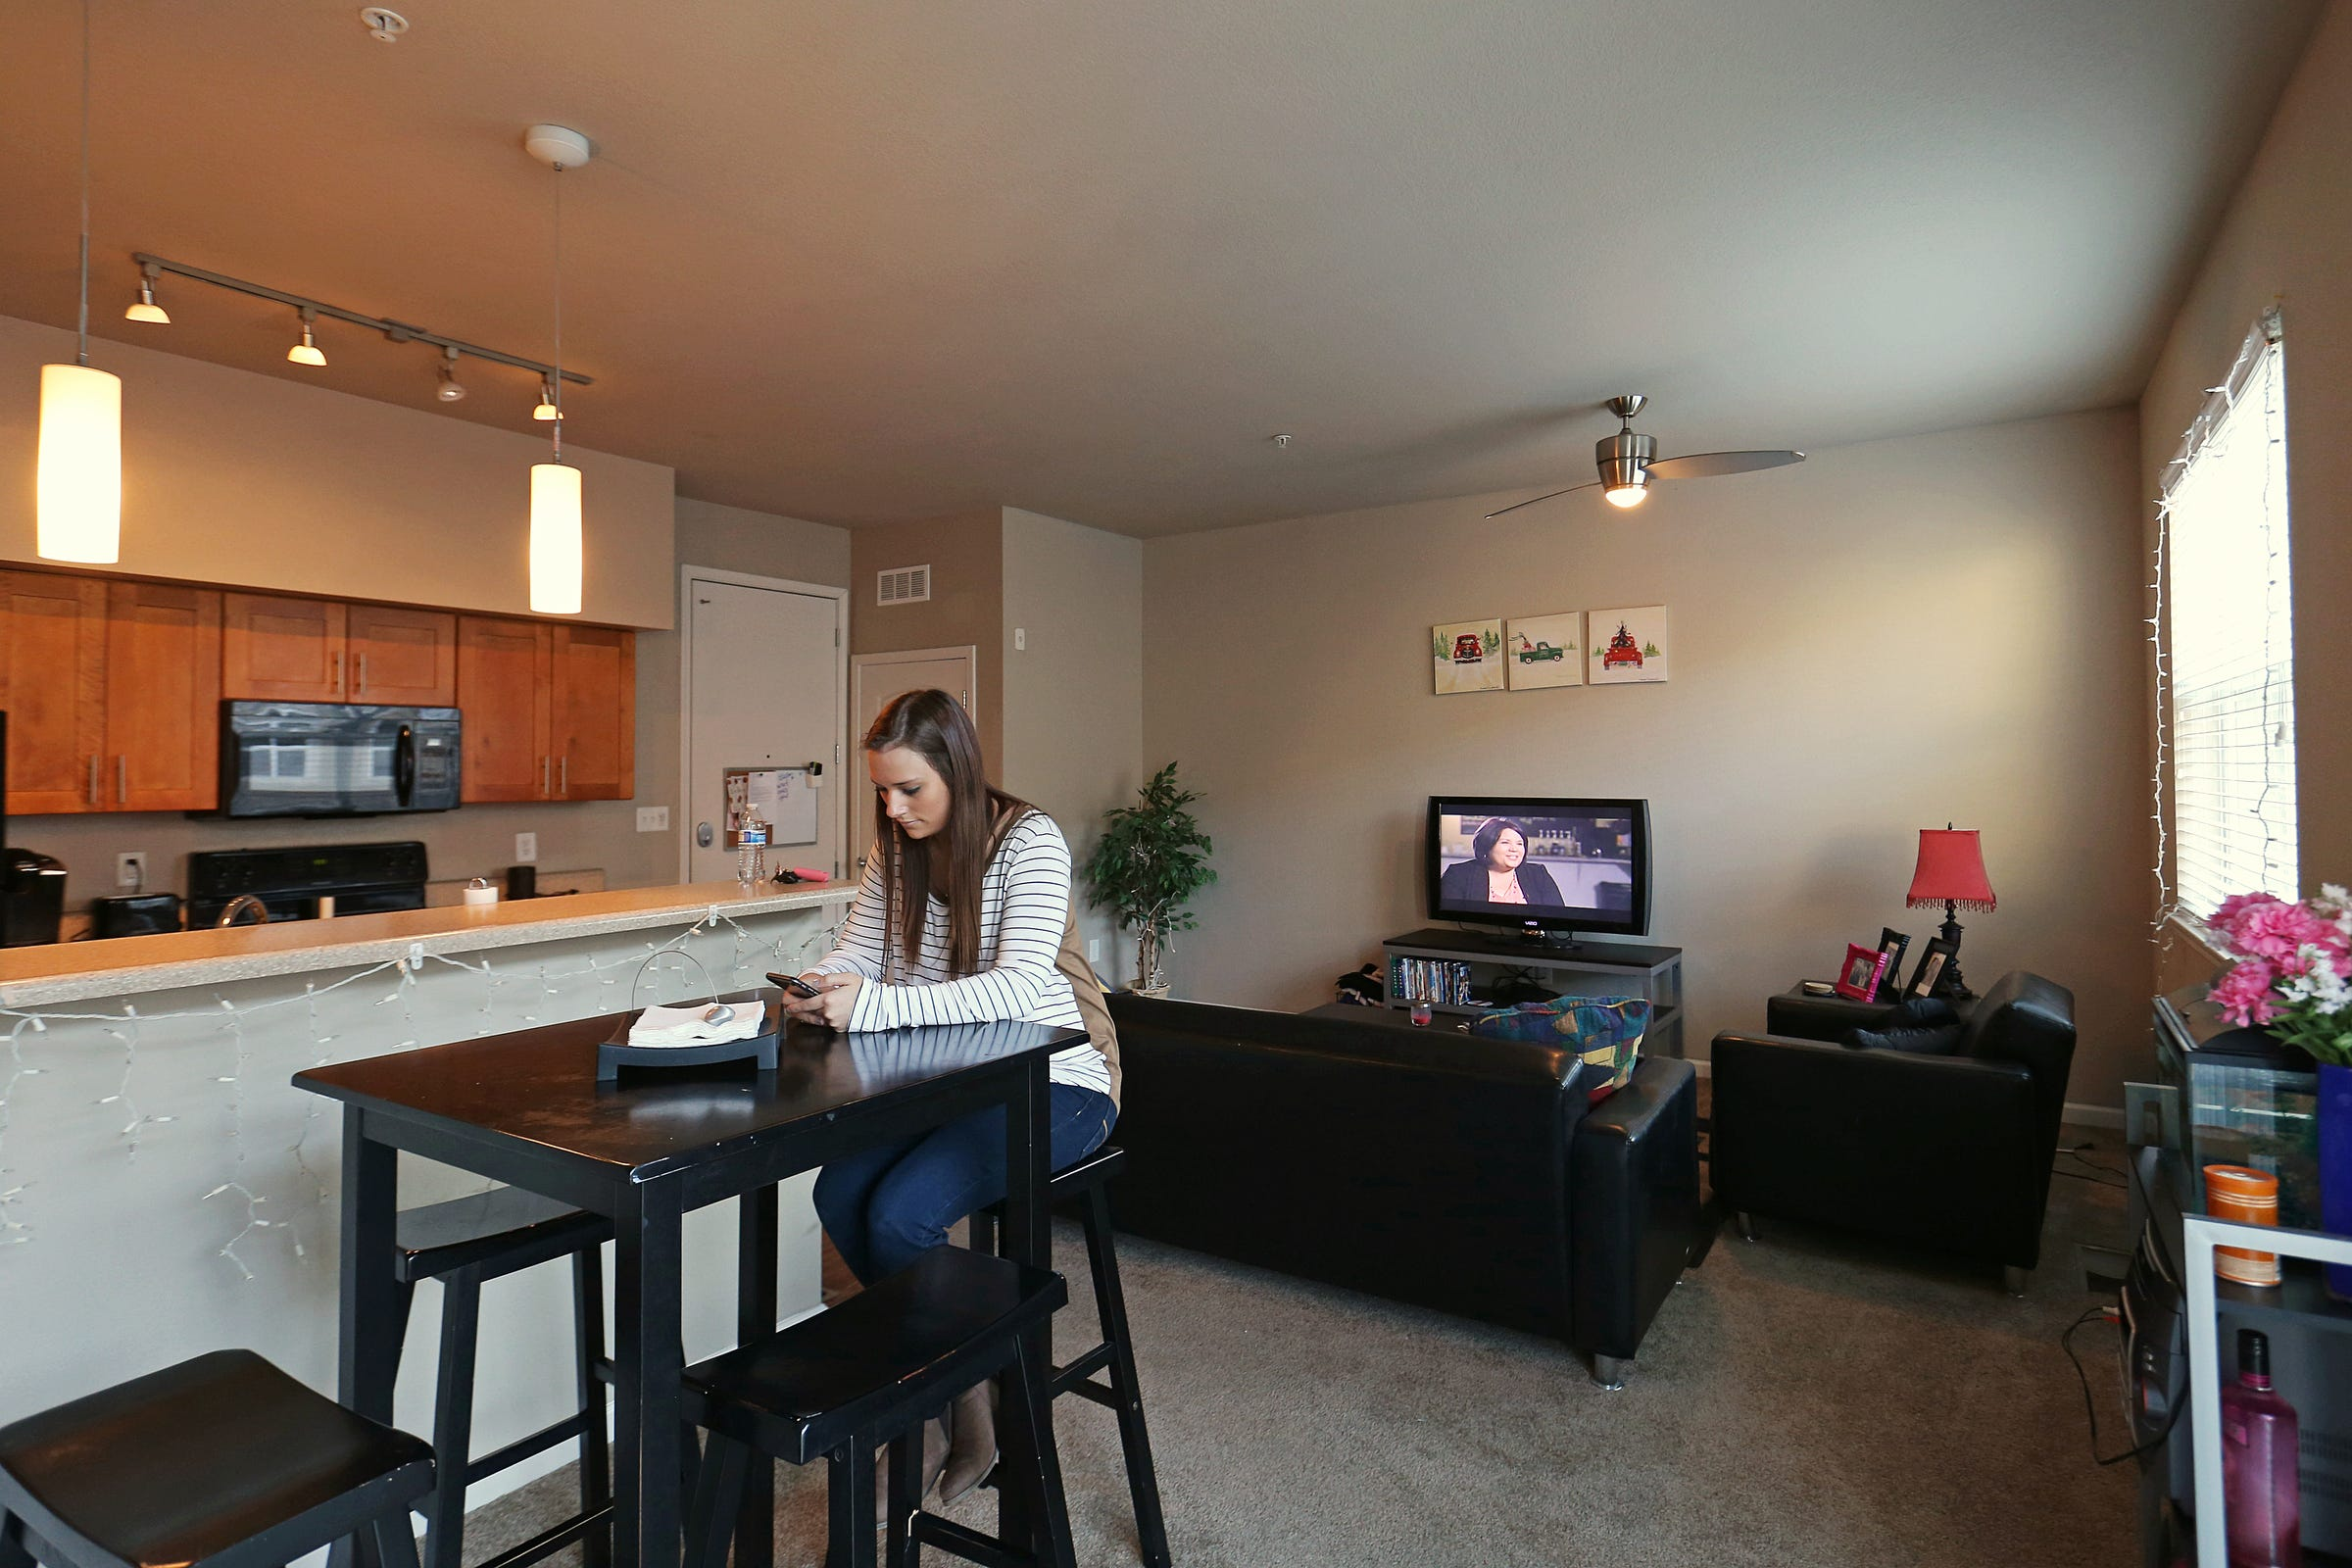 for some iupui students off campus housing means resort style living